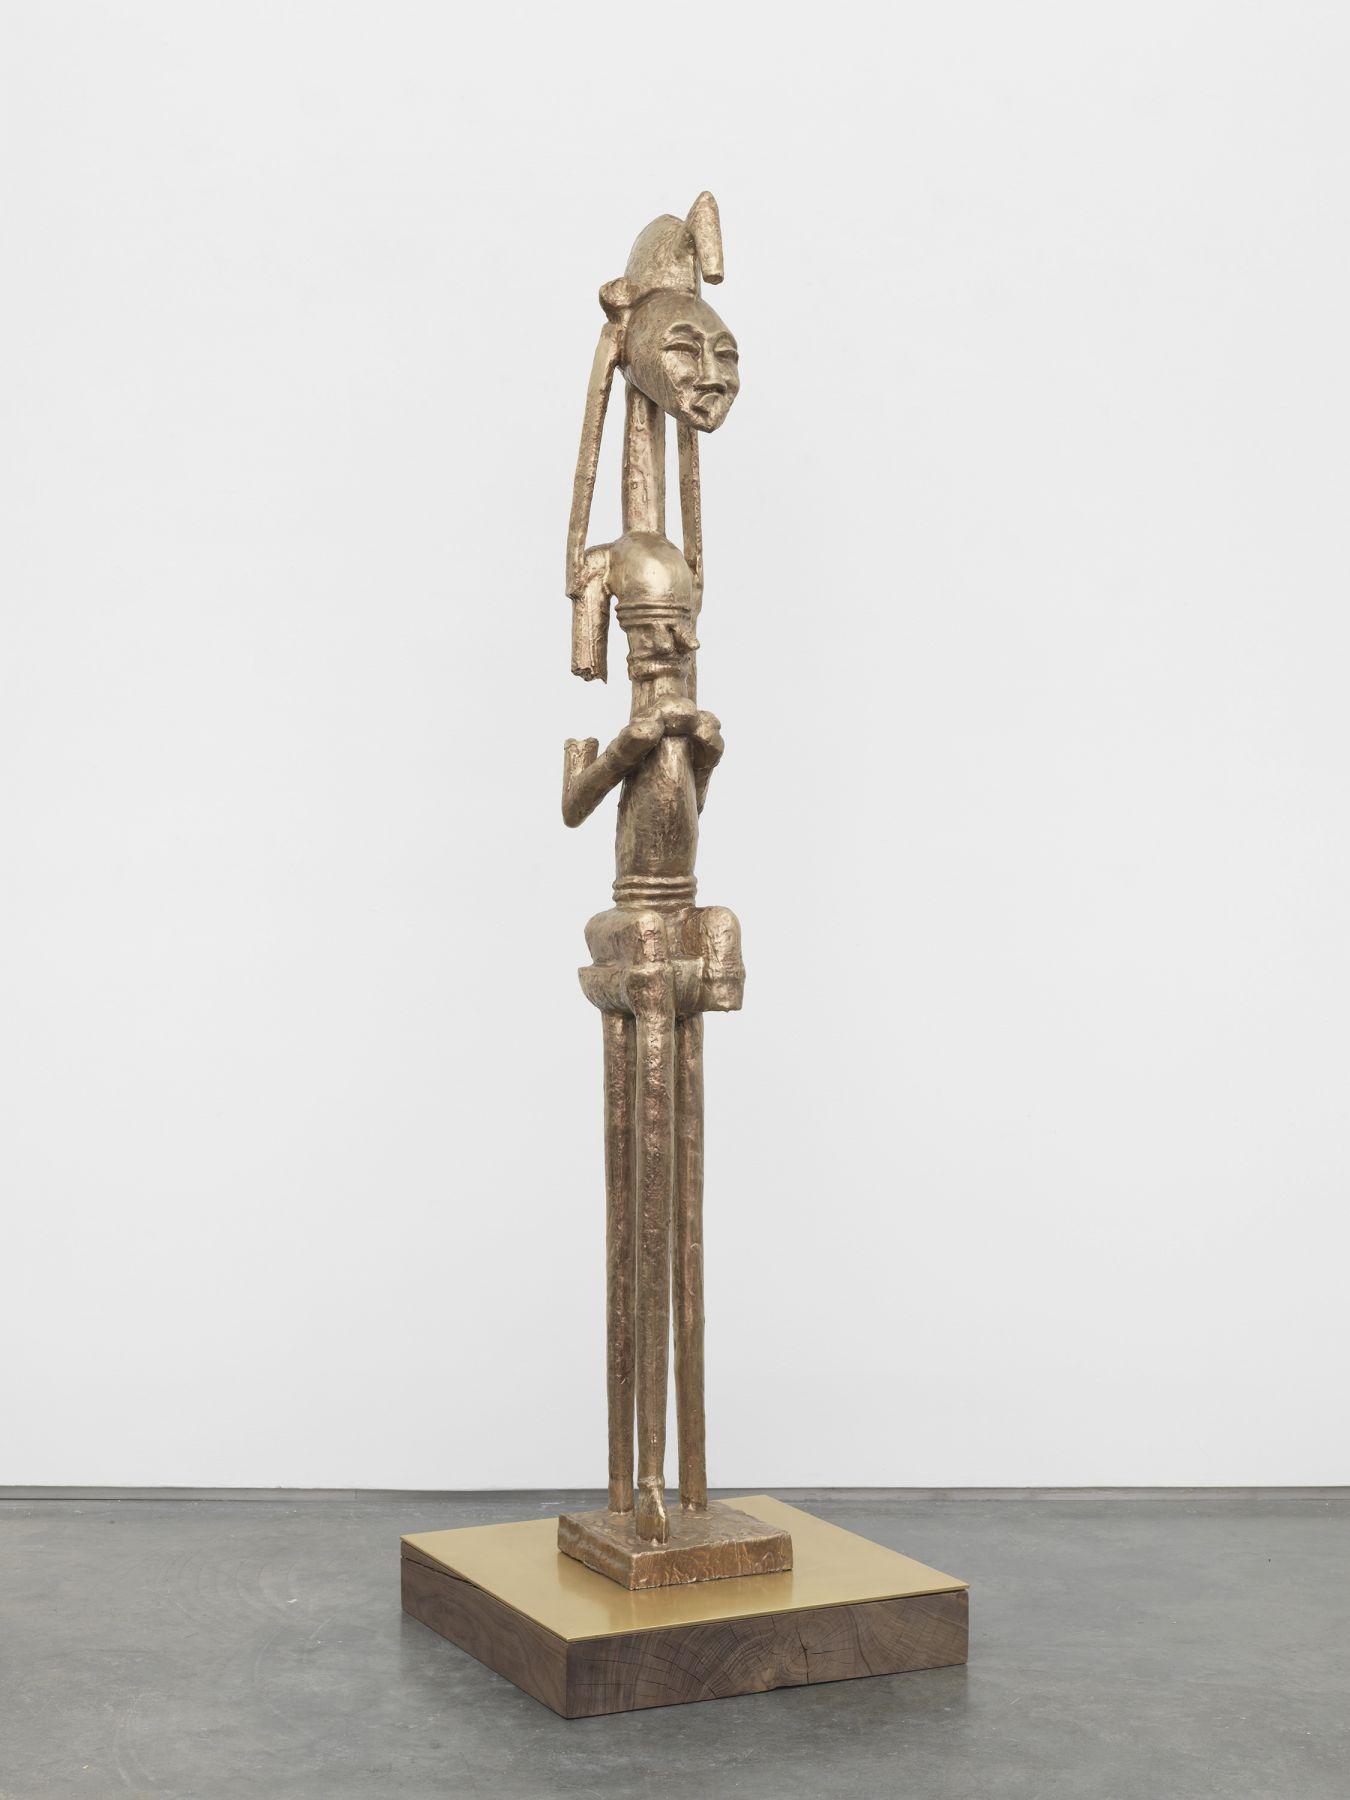 a bronze BAM sculpture inspired by African sculpture and made by Sanford Biggers